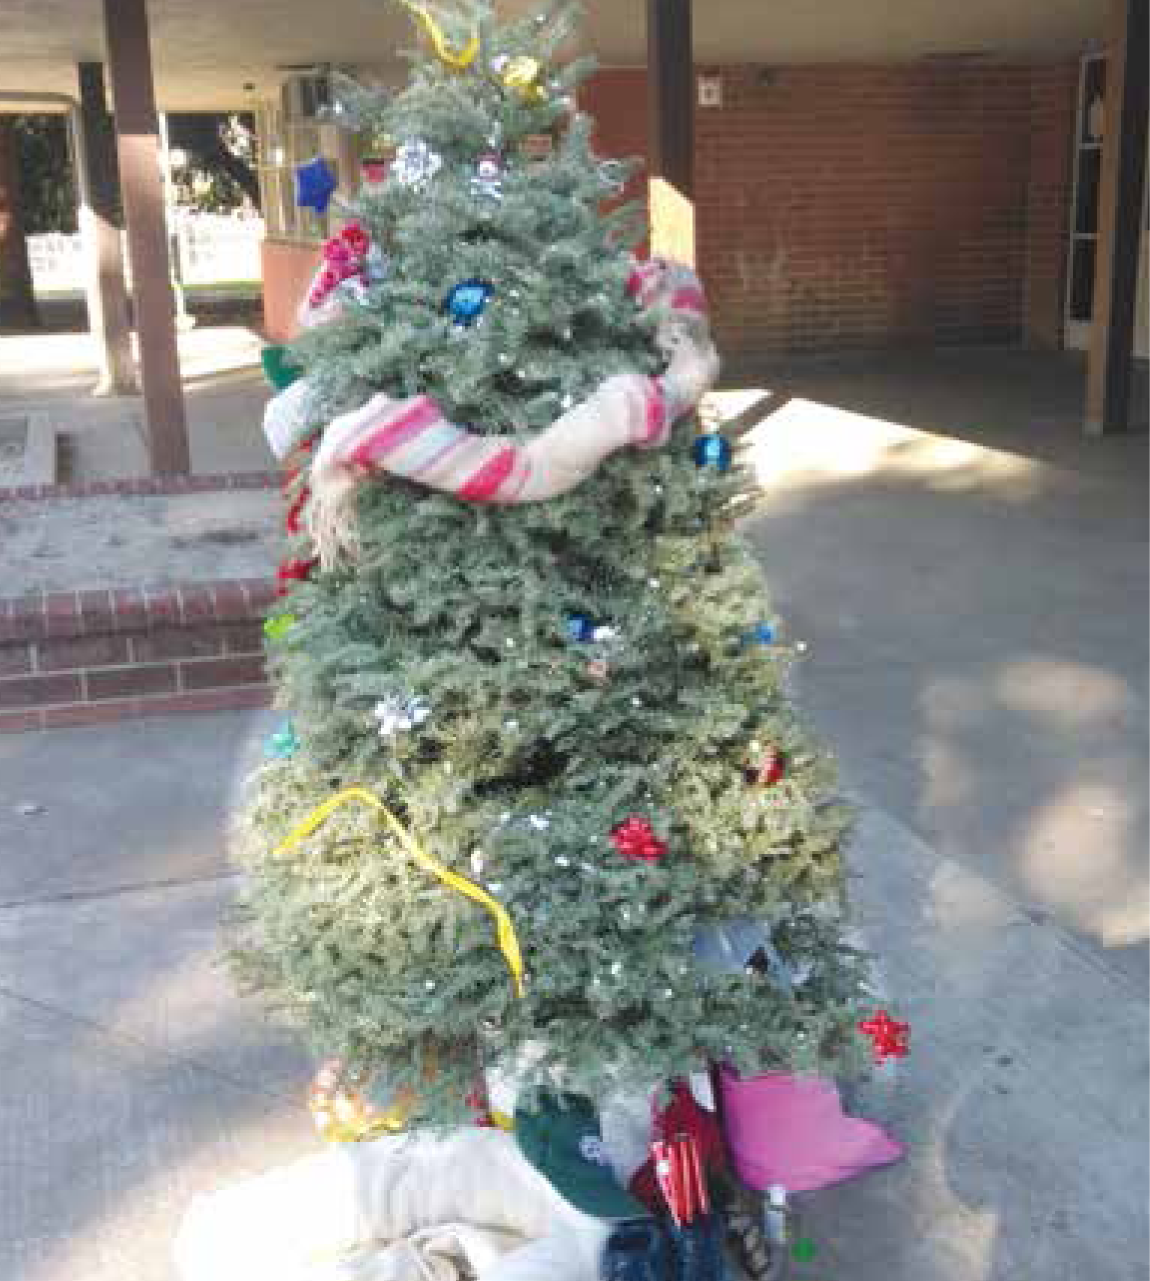 The Christmas tree was decked with gifts for all those who had no families.